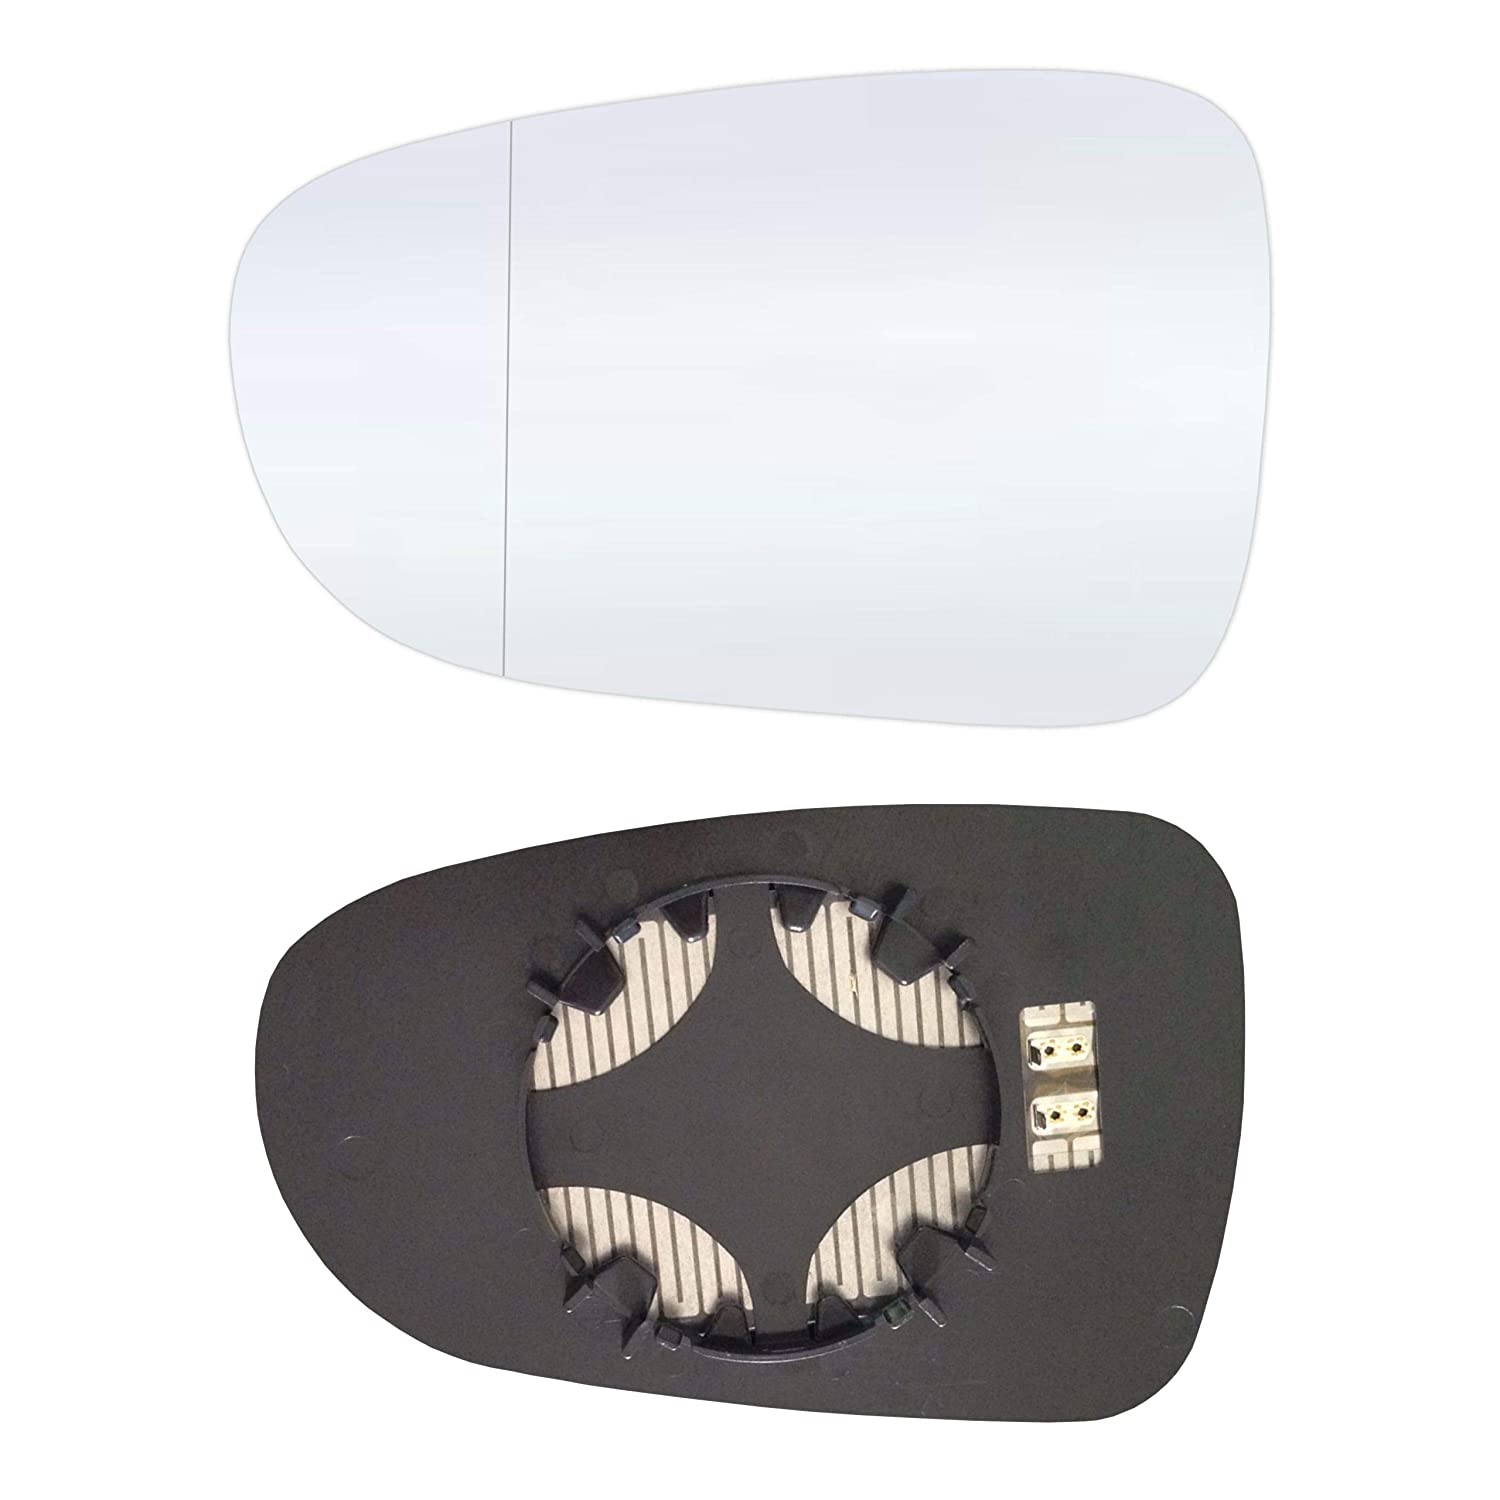 Left Driver's Side Aspherish Mirror Glass with Plate and Heater #AM-FDGY95-LWAH Sylgab